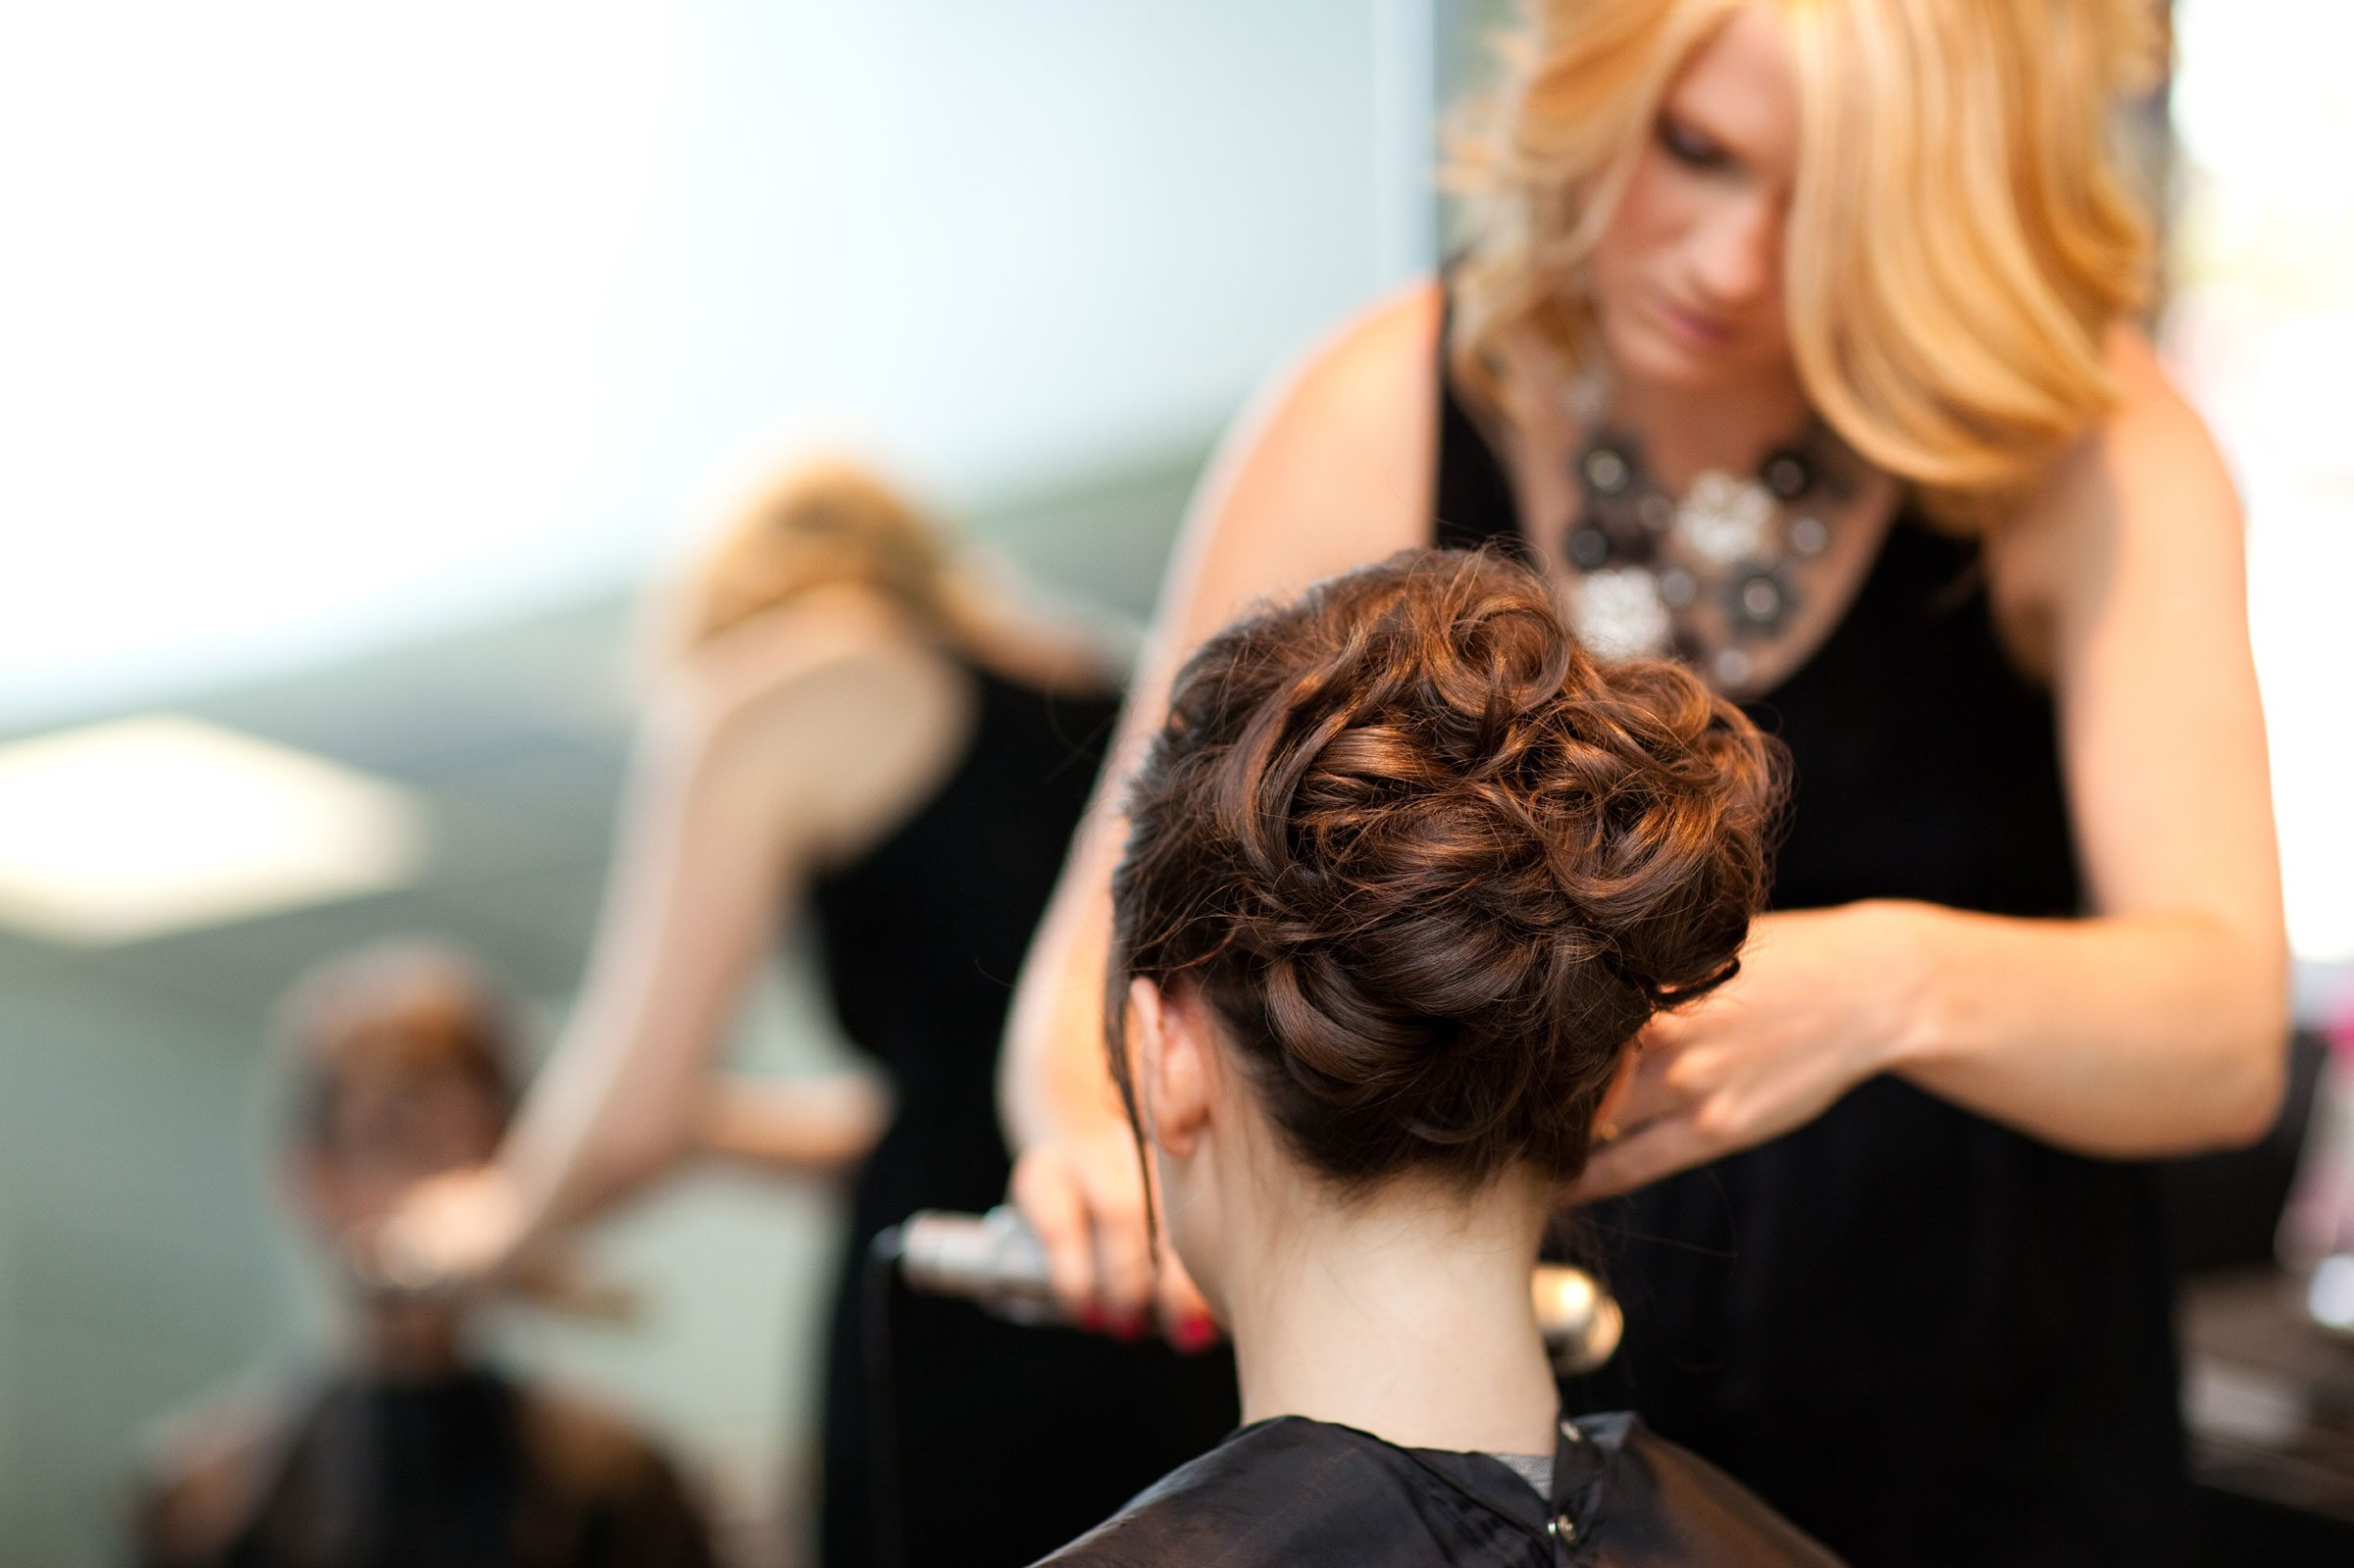 Hair Styling Salons Near Me Secrets Hair Stylists Won't Tell You  Reader's Digest